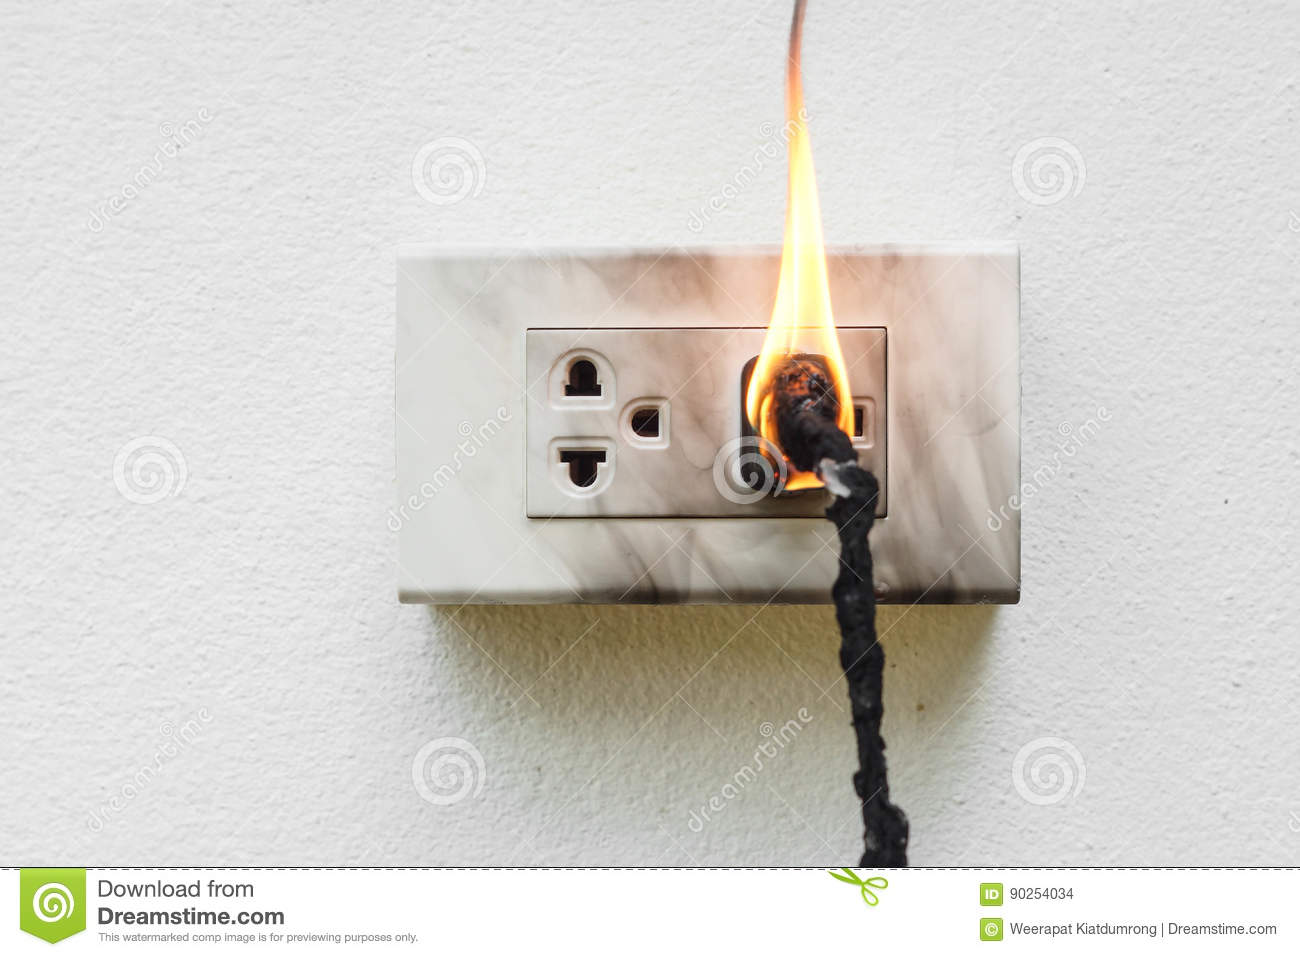 hight resolution of electricity short circuit electrical failure resulting in electricity wire burnt